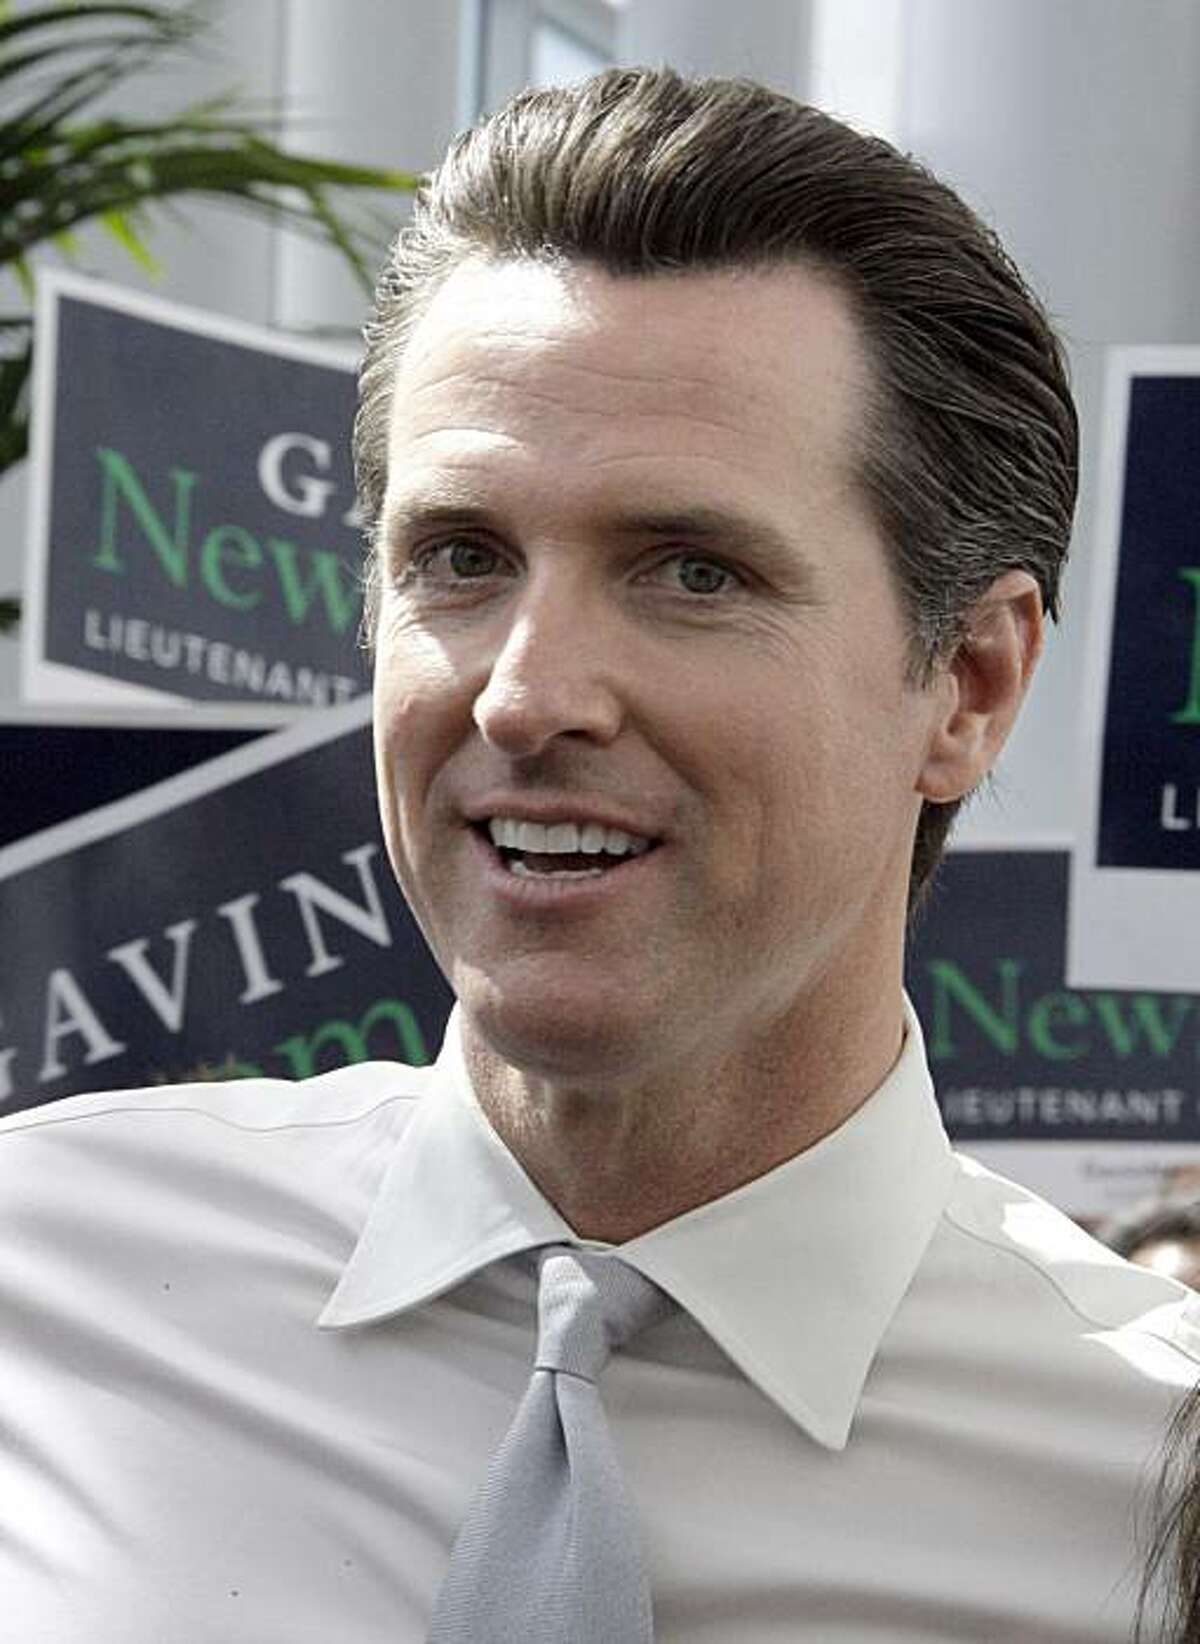 FILE - In this April 17, 2010, San Francisco Mayor and candidate for the Democratic nomination for Lieutenant Governor Gavin Newsom in the June primary, walks through the crowd at the California Democratic Convention in Los Angeles. Newsom is challengedby Los Angeles City Councilwoman Janice Hahn.